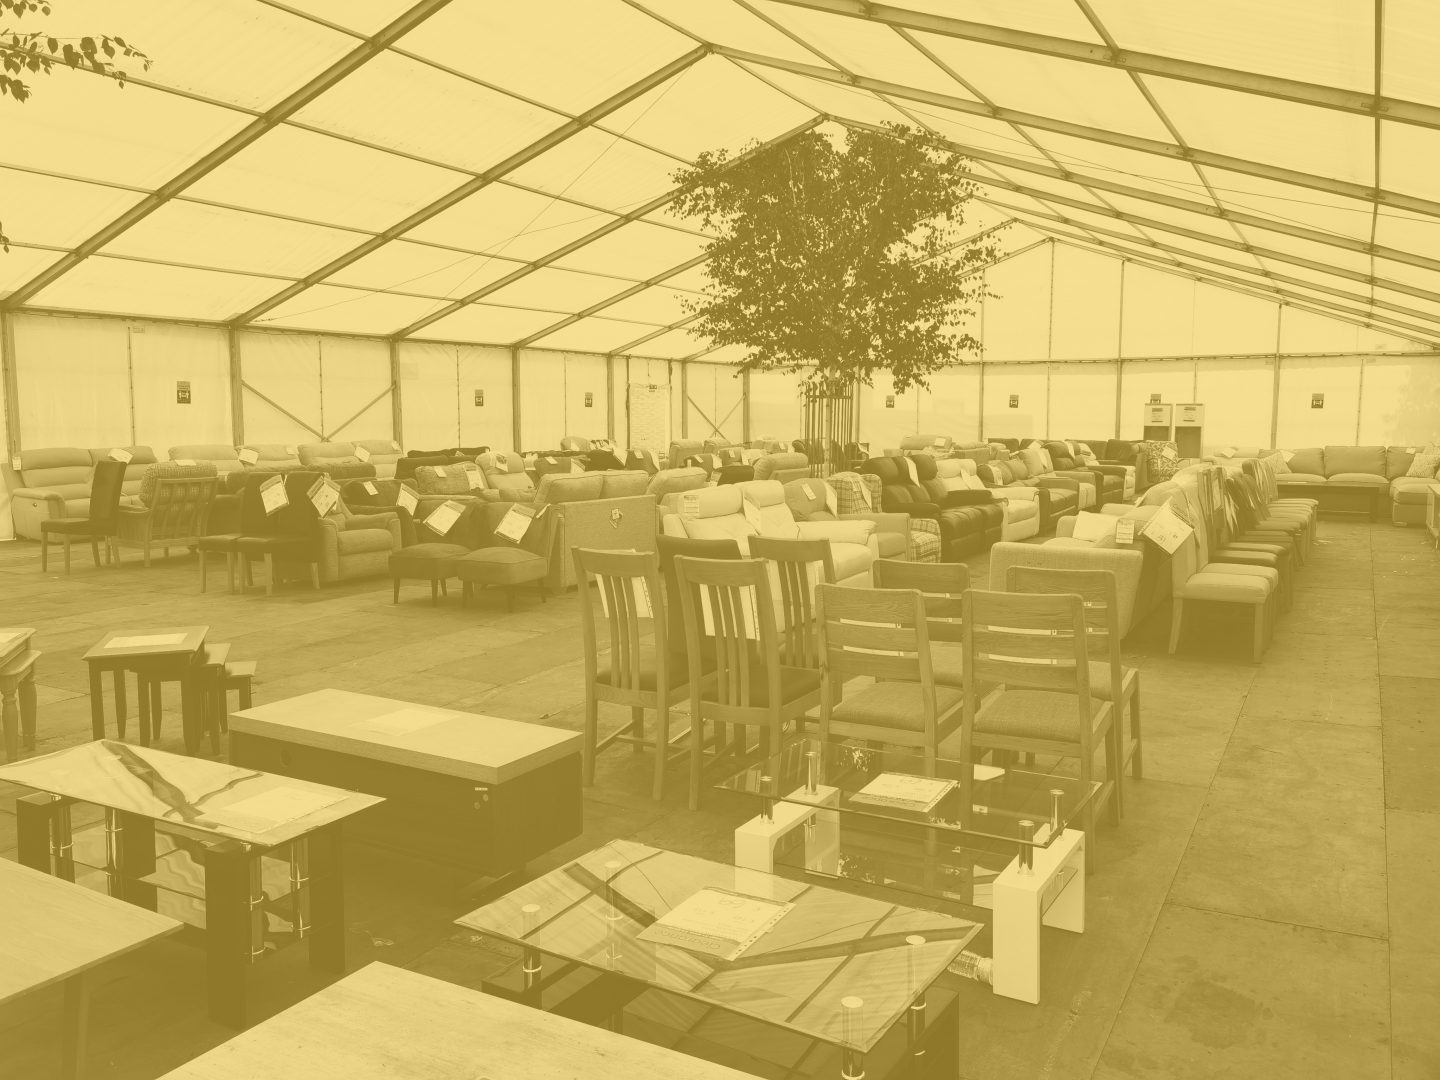 The Big Marquee Clearance Sale